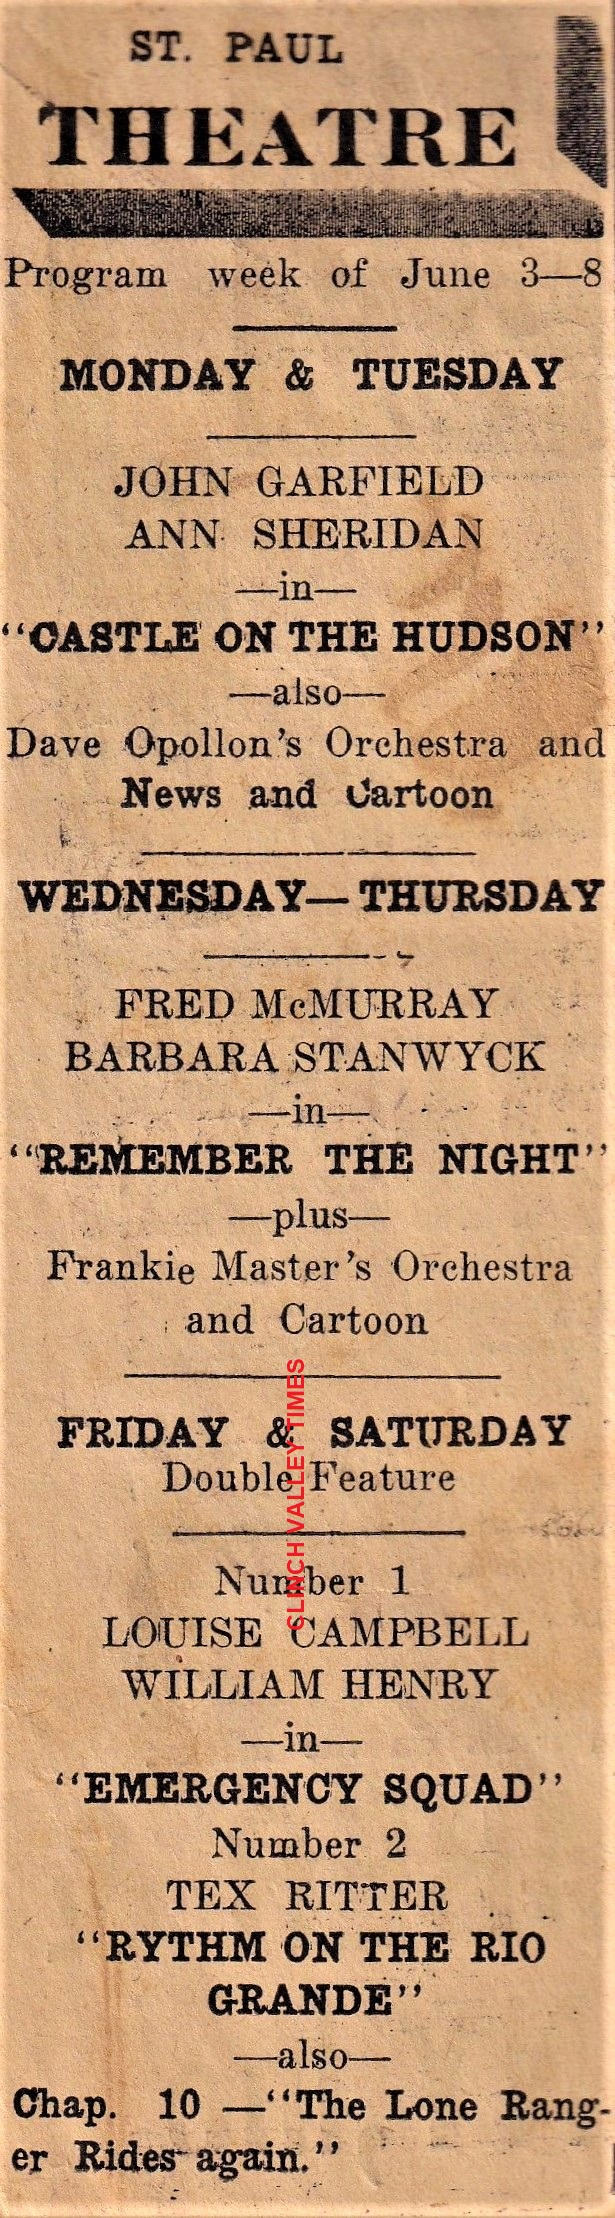 St. Paul Theatre May 30, 1940